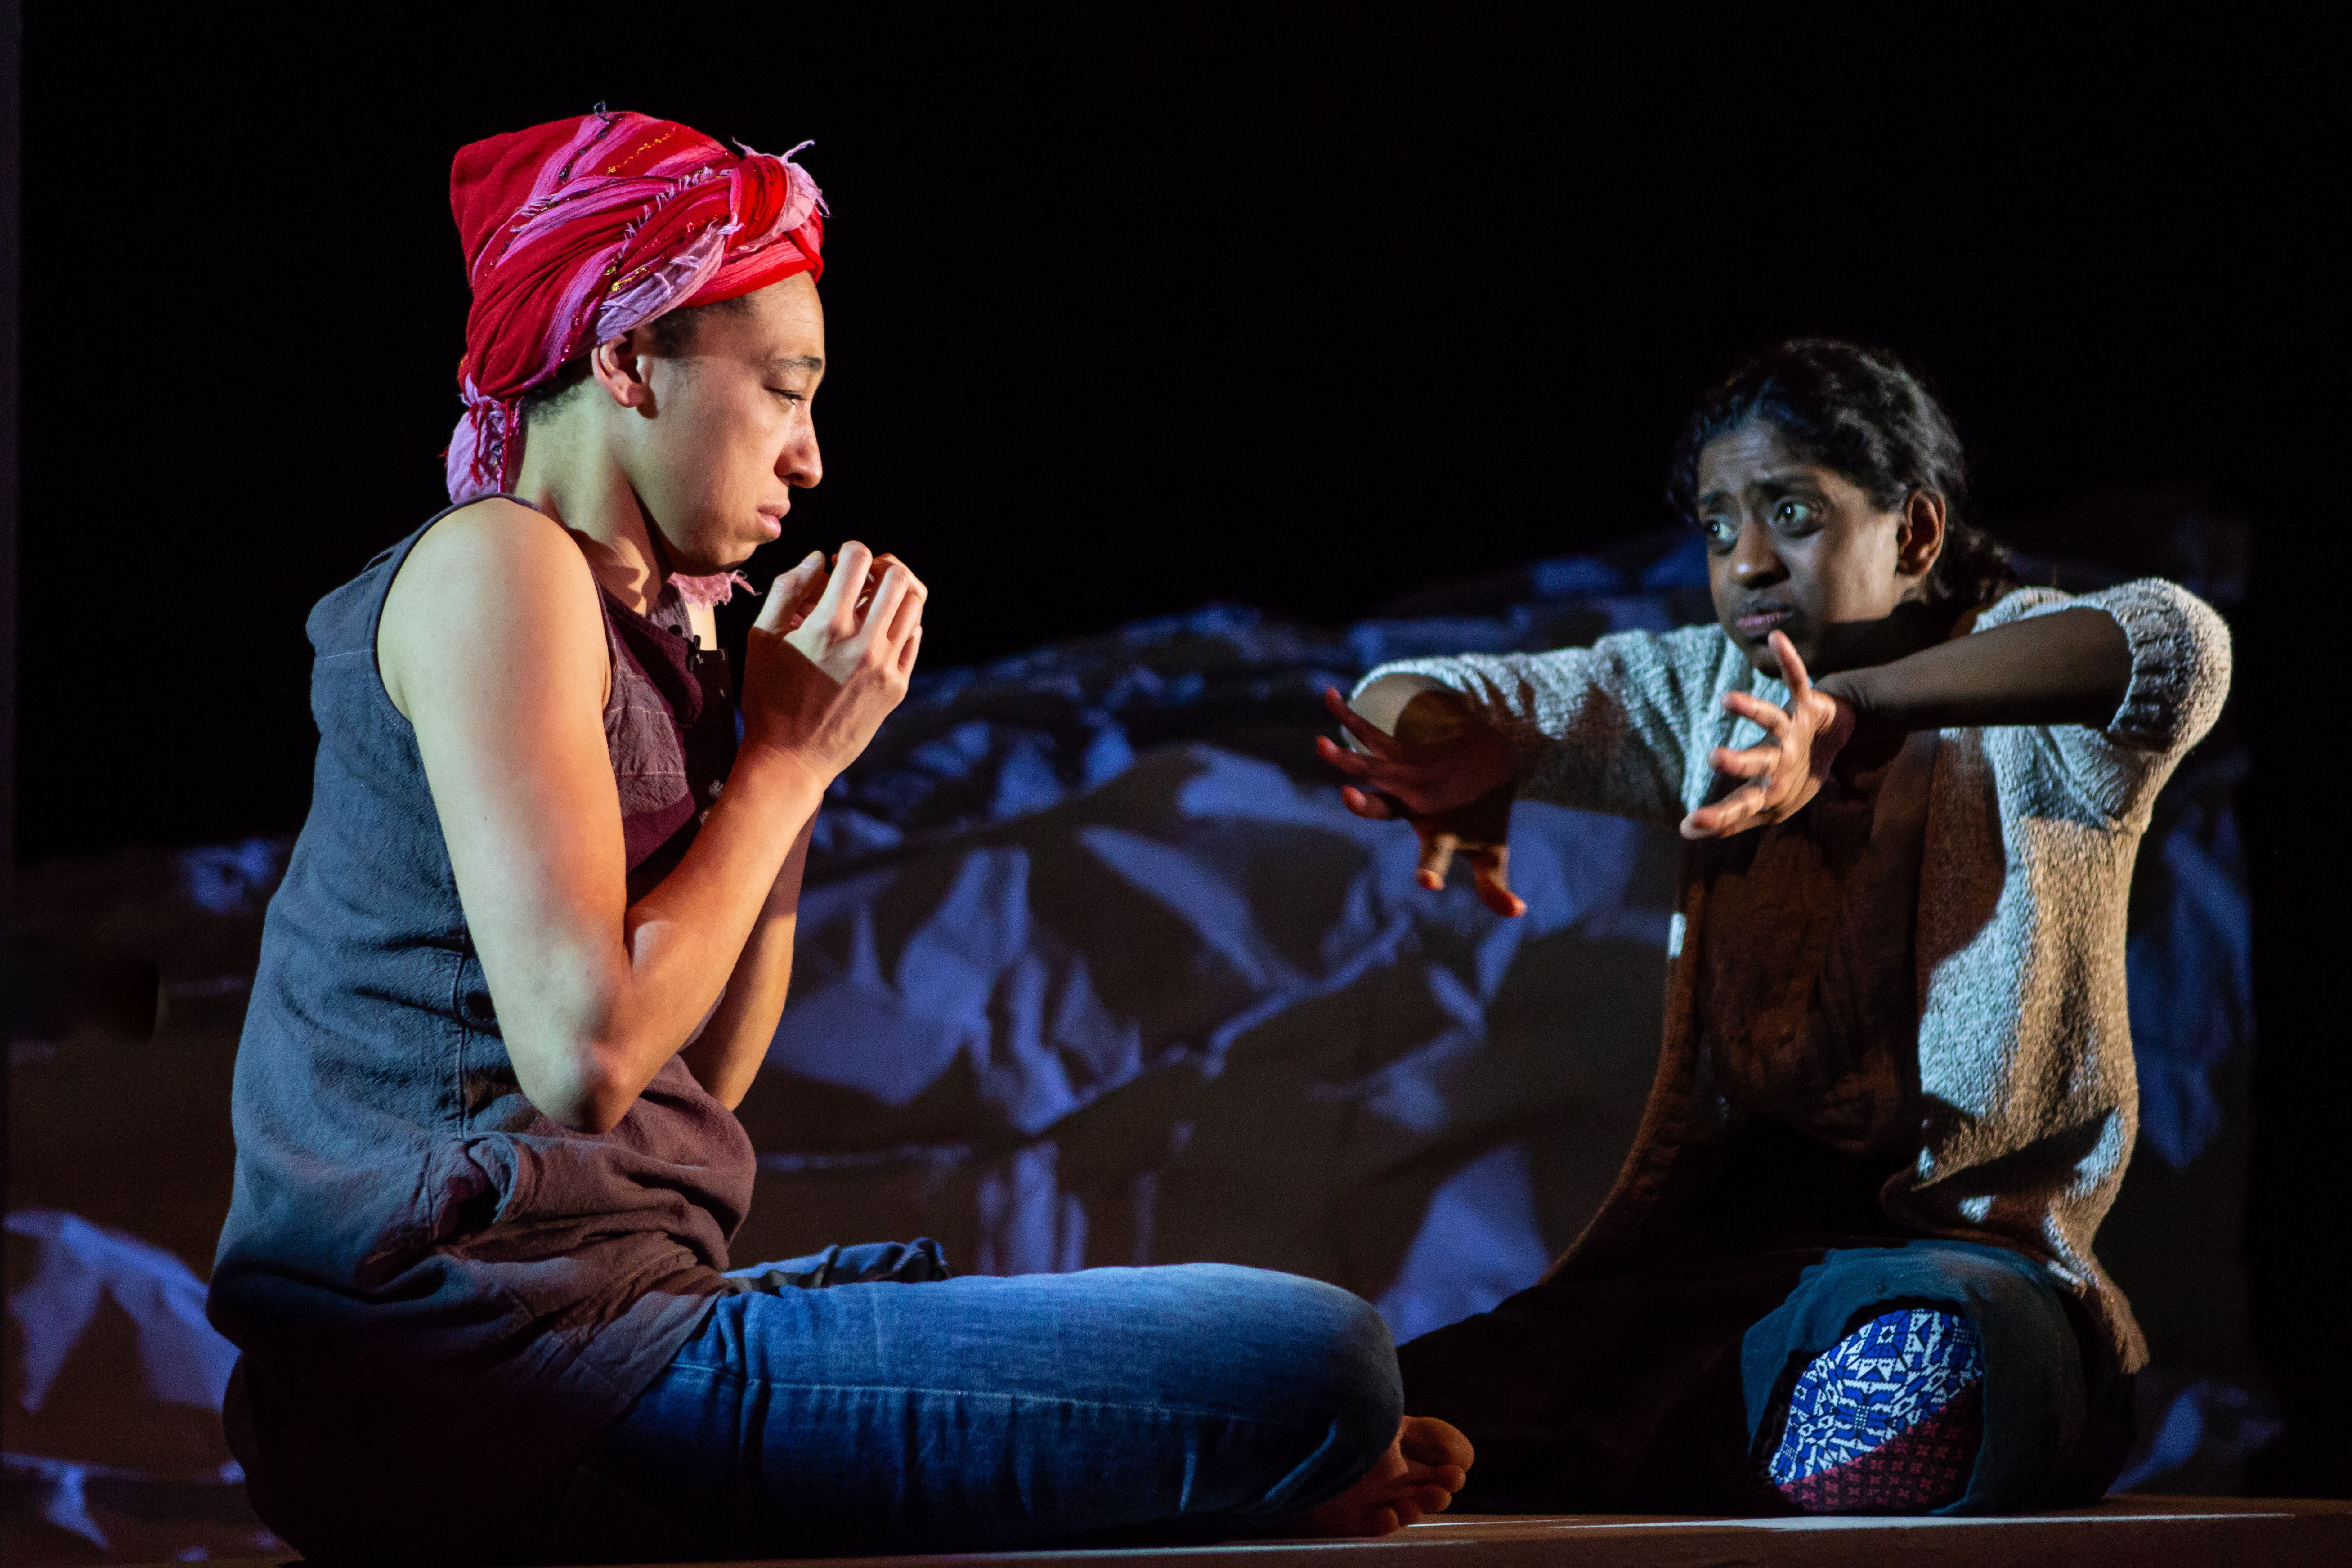 Going Through Production Photos - Charmaine Wombwell & Nadia Nadarajah - Photos by Ali Wright